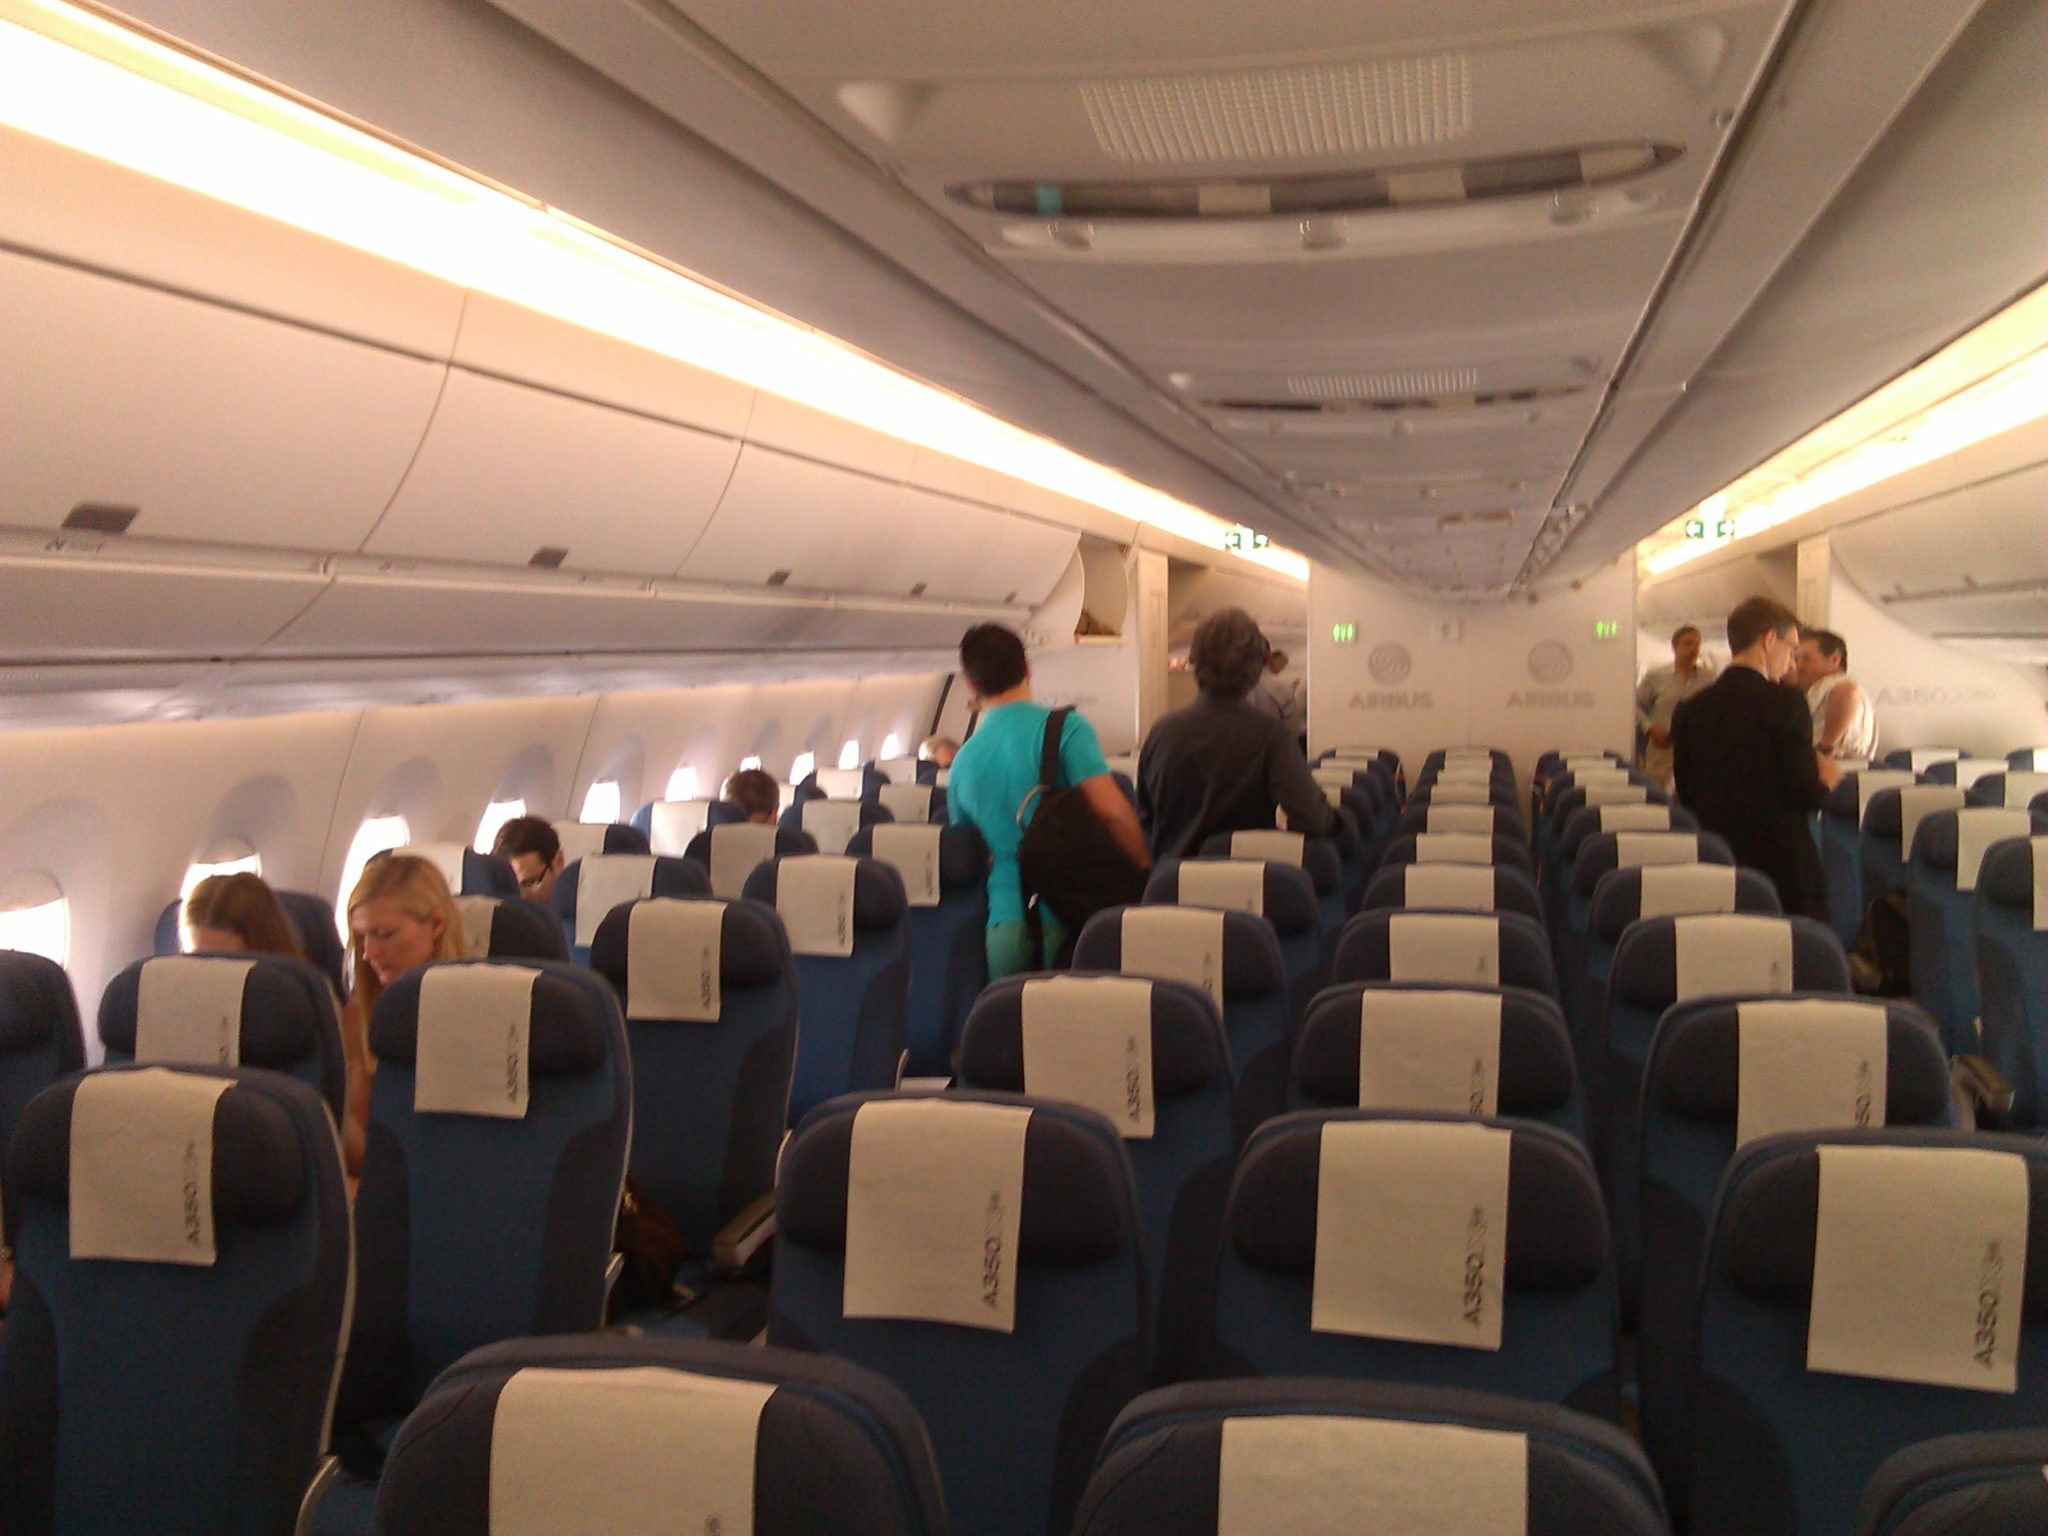 A350 Coach Cabin, seats and galleys by B/E Aerospace.